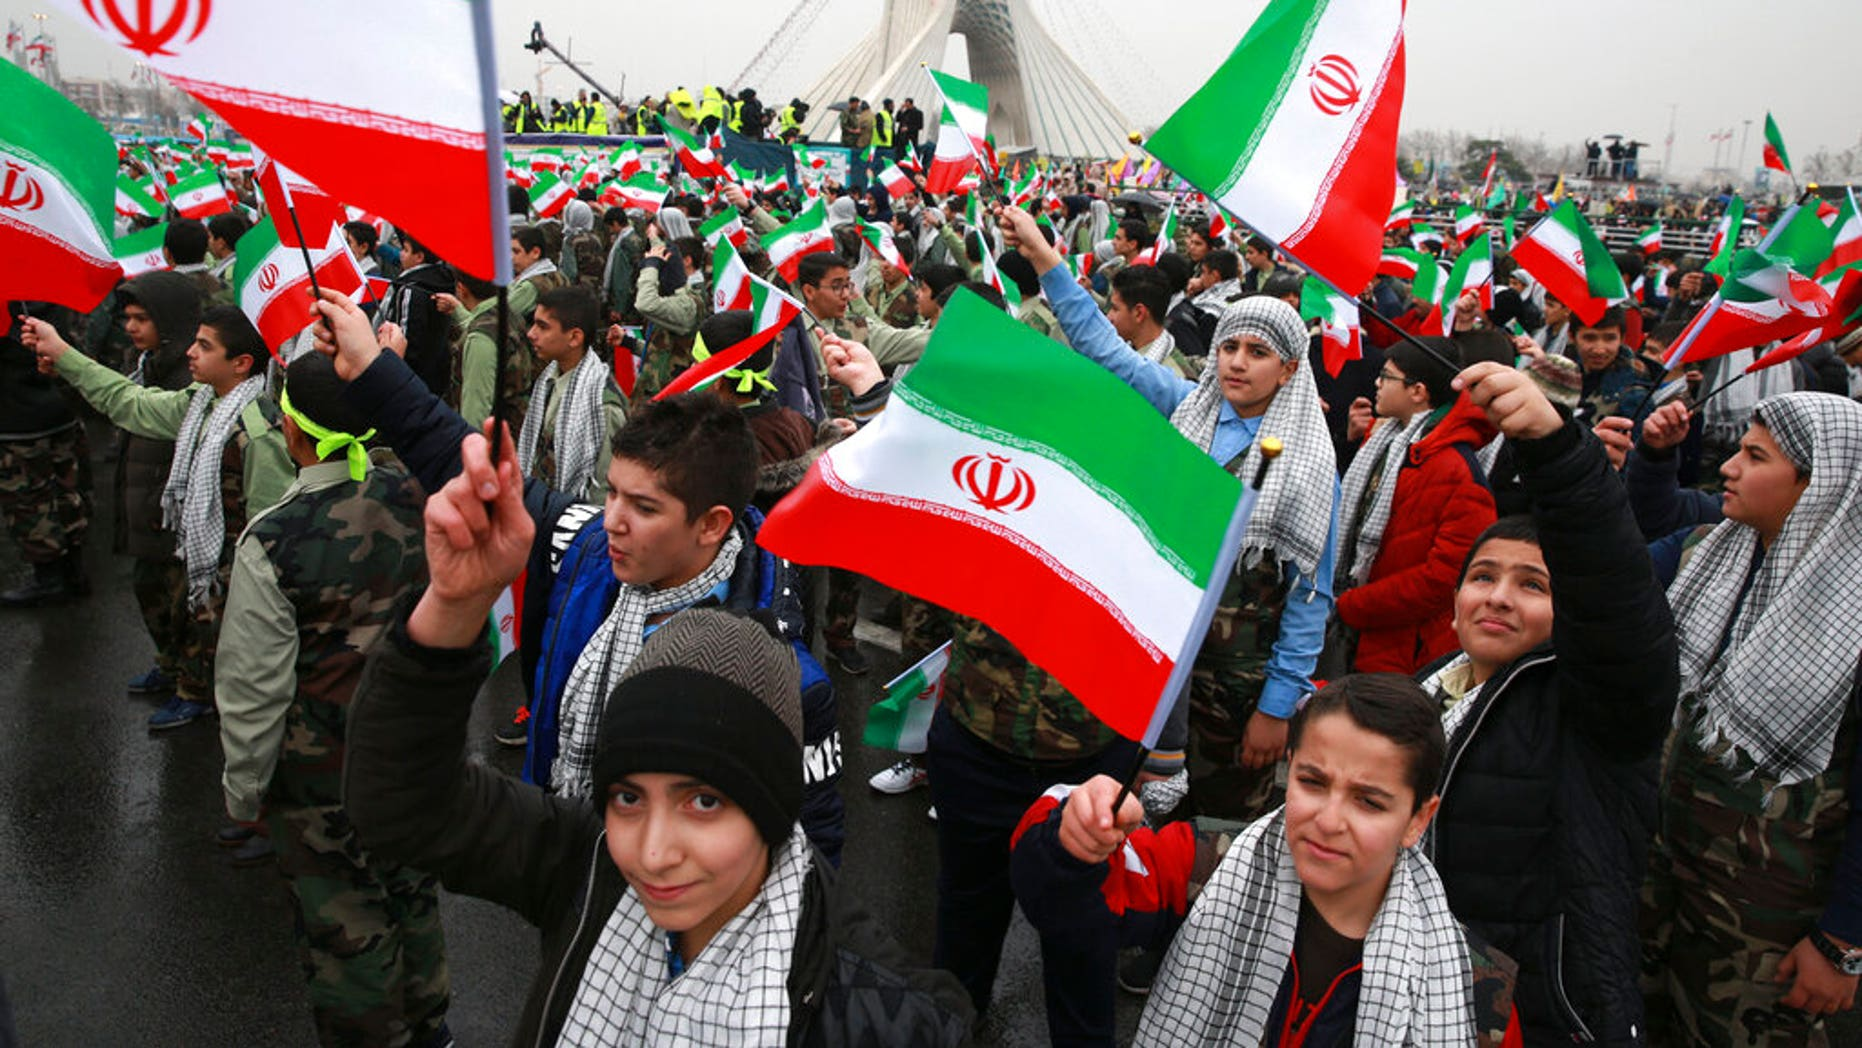 Children wave Iranian flags during a ceremony celebrating the 40th anniversary of the Islamic Revolution at the Azadi Freedom Square in Tehran Iran Monday Feb. 11 2019. Hundreds of thousands of people poured out onto the streets of Tehran and other